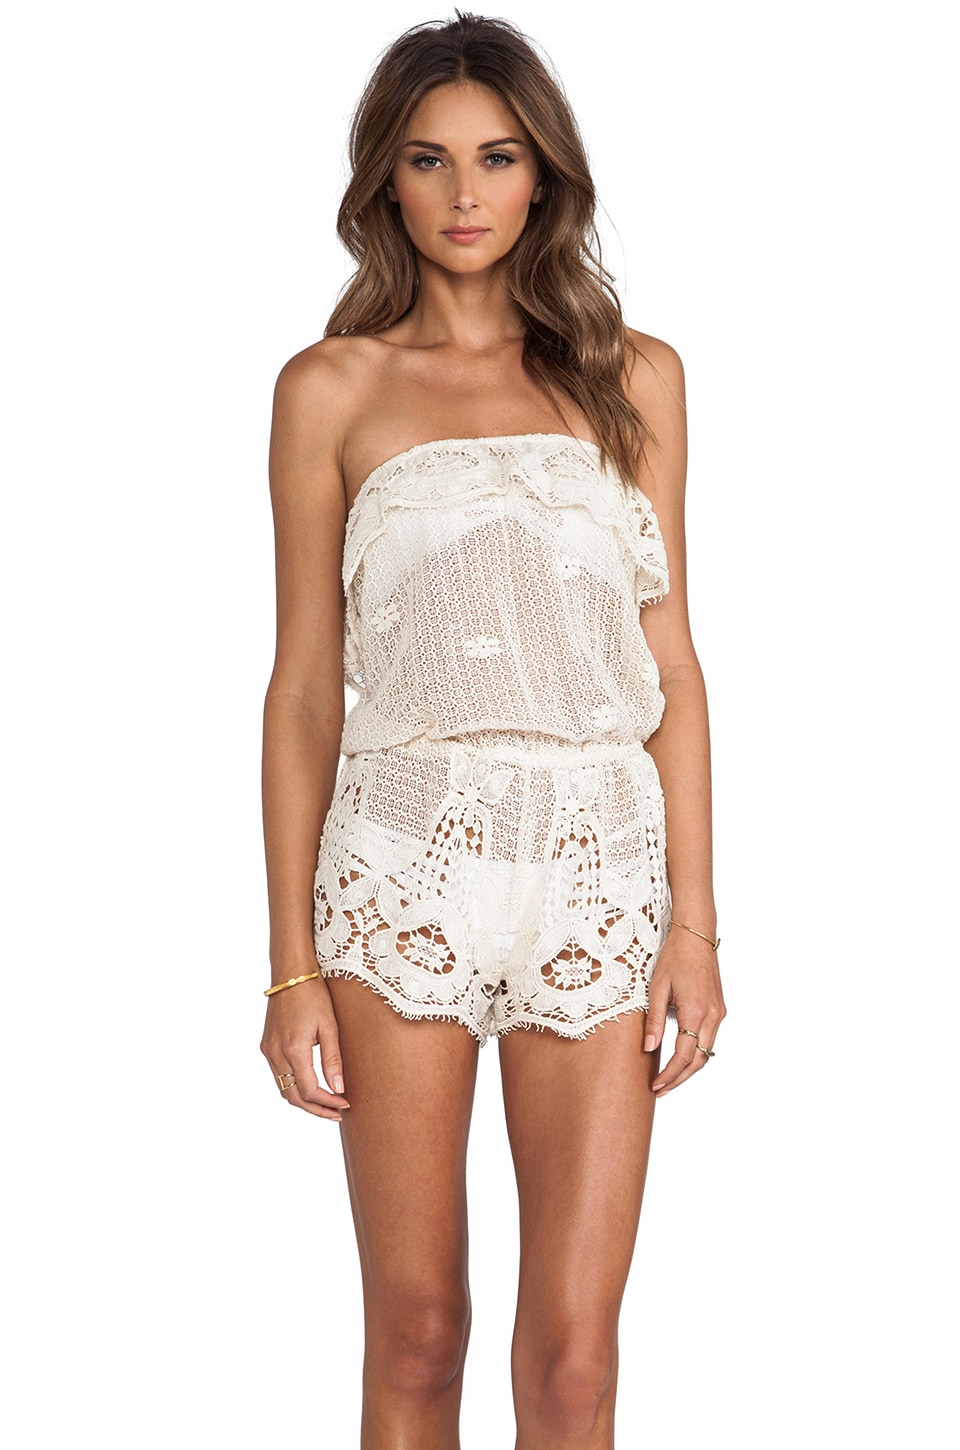 eberjey Nina Romper in Natural